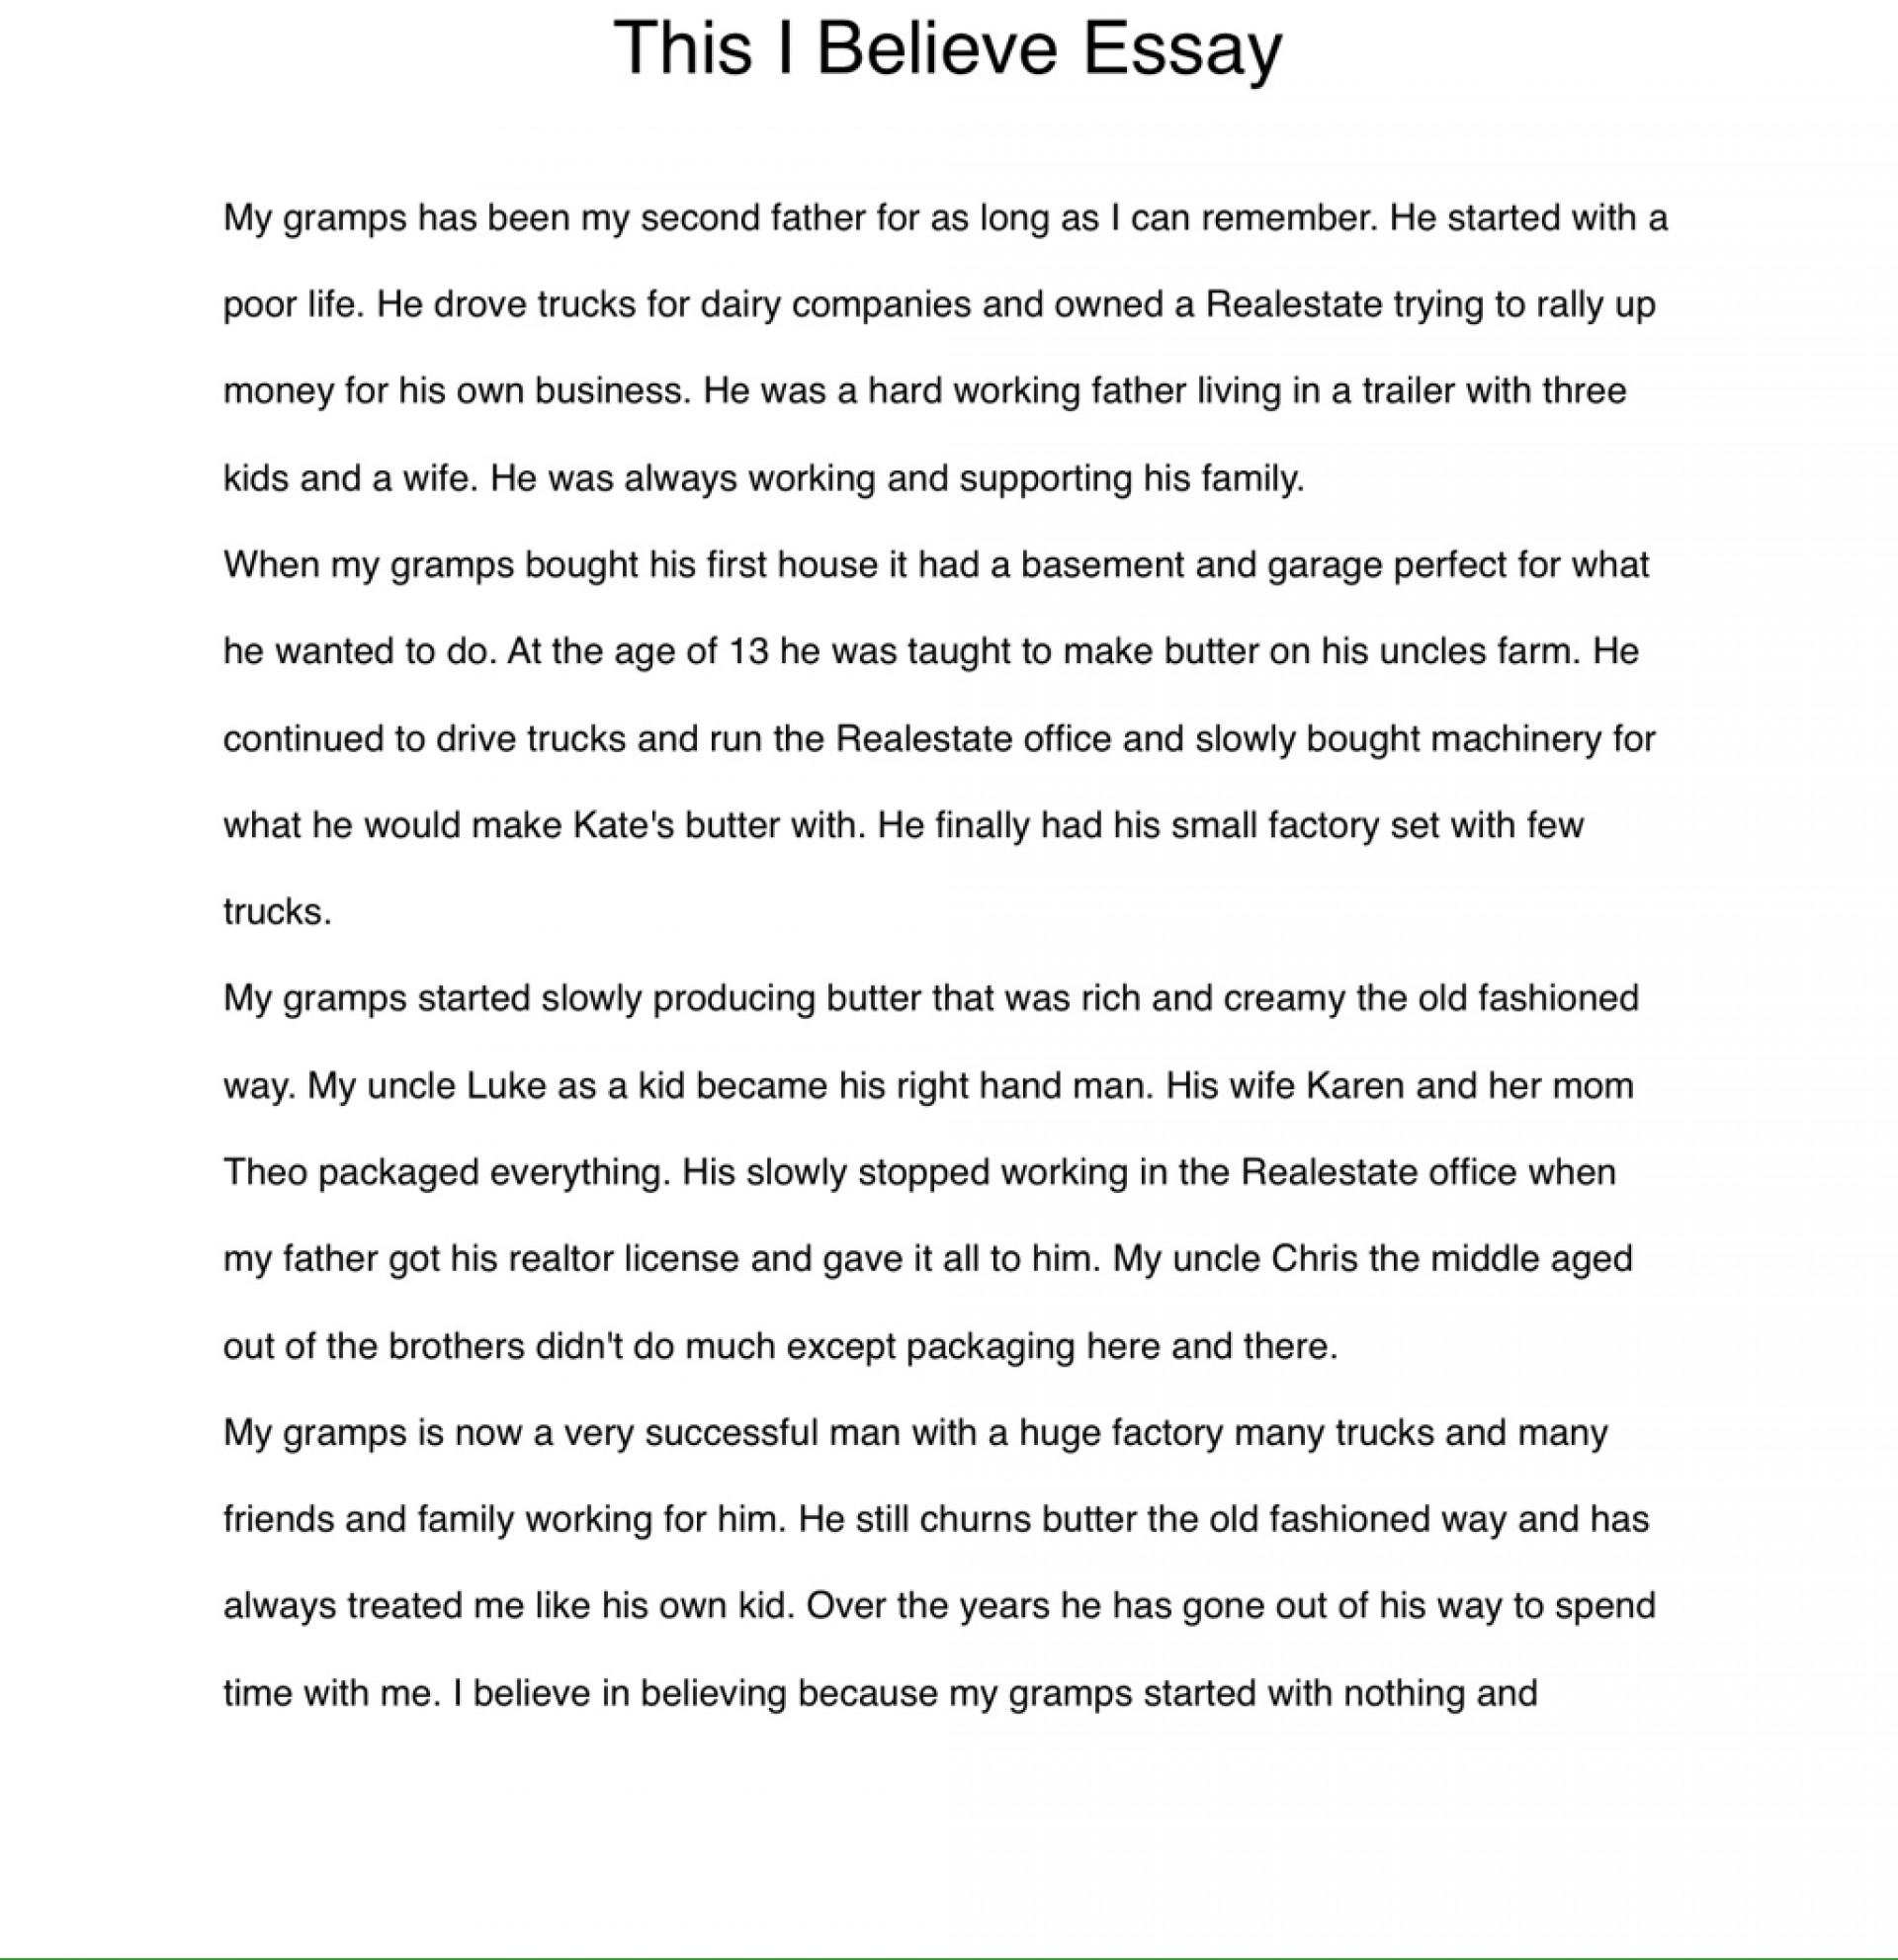 004 This I Believe Essay Topics Example Fearsome Prompt Easy Funny 1920